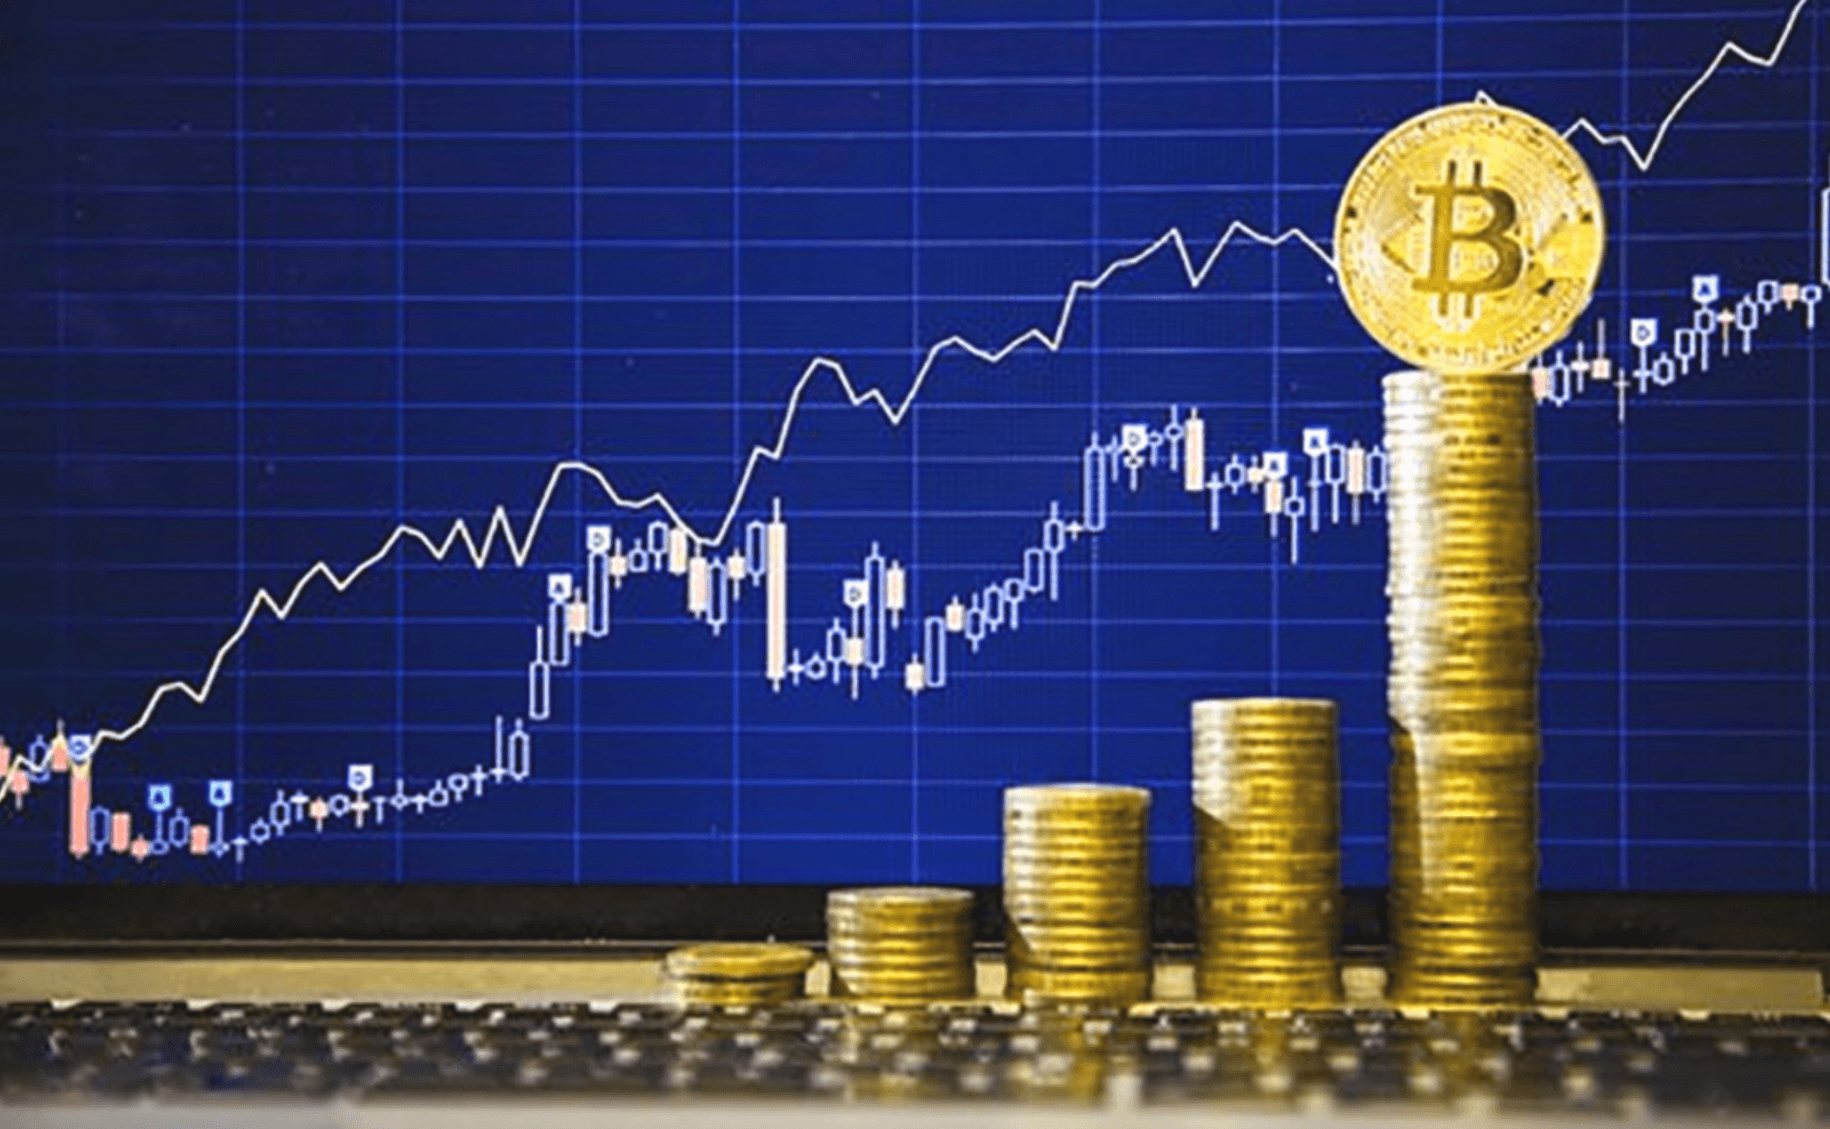 Capturing The Trend In Cryptocurrencies